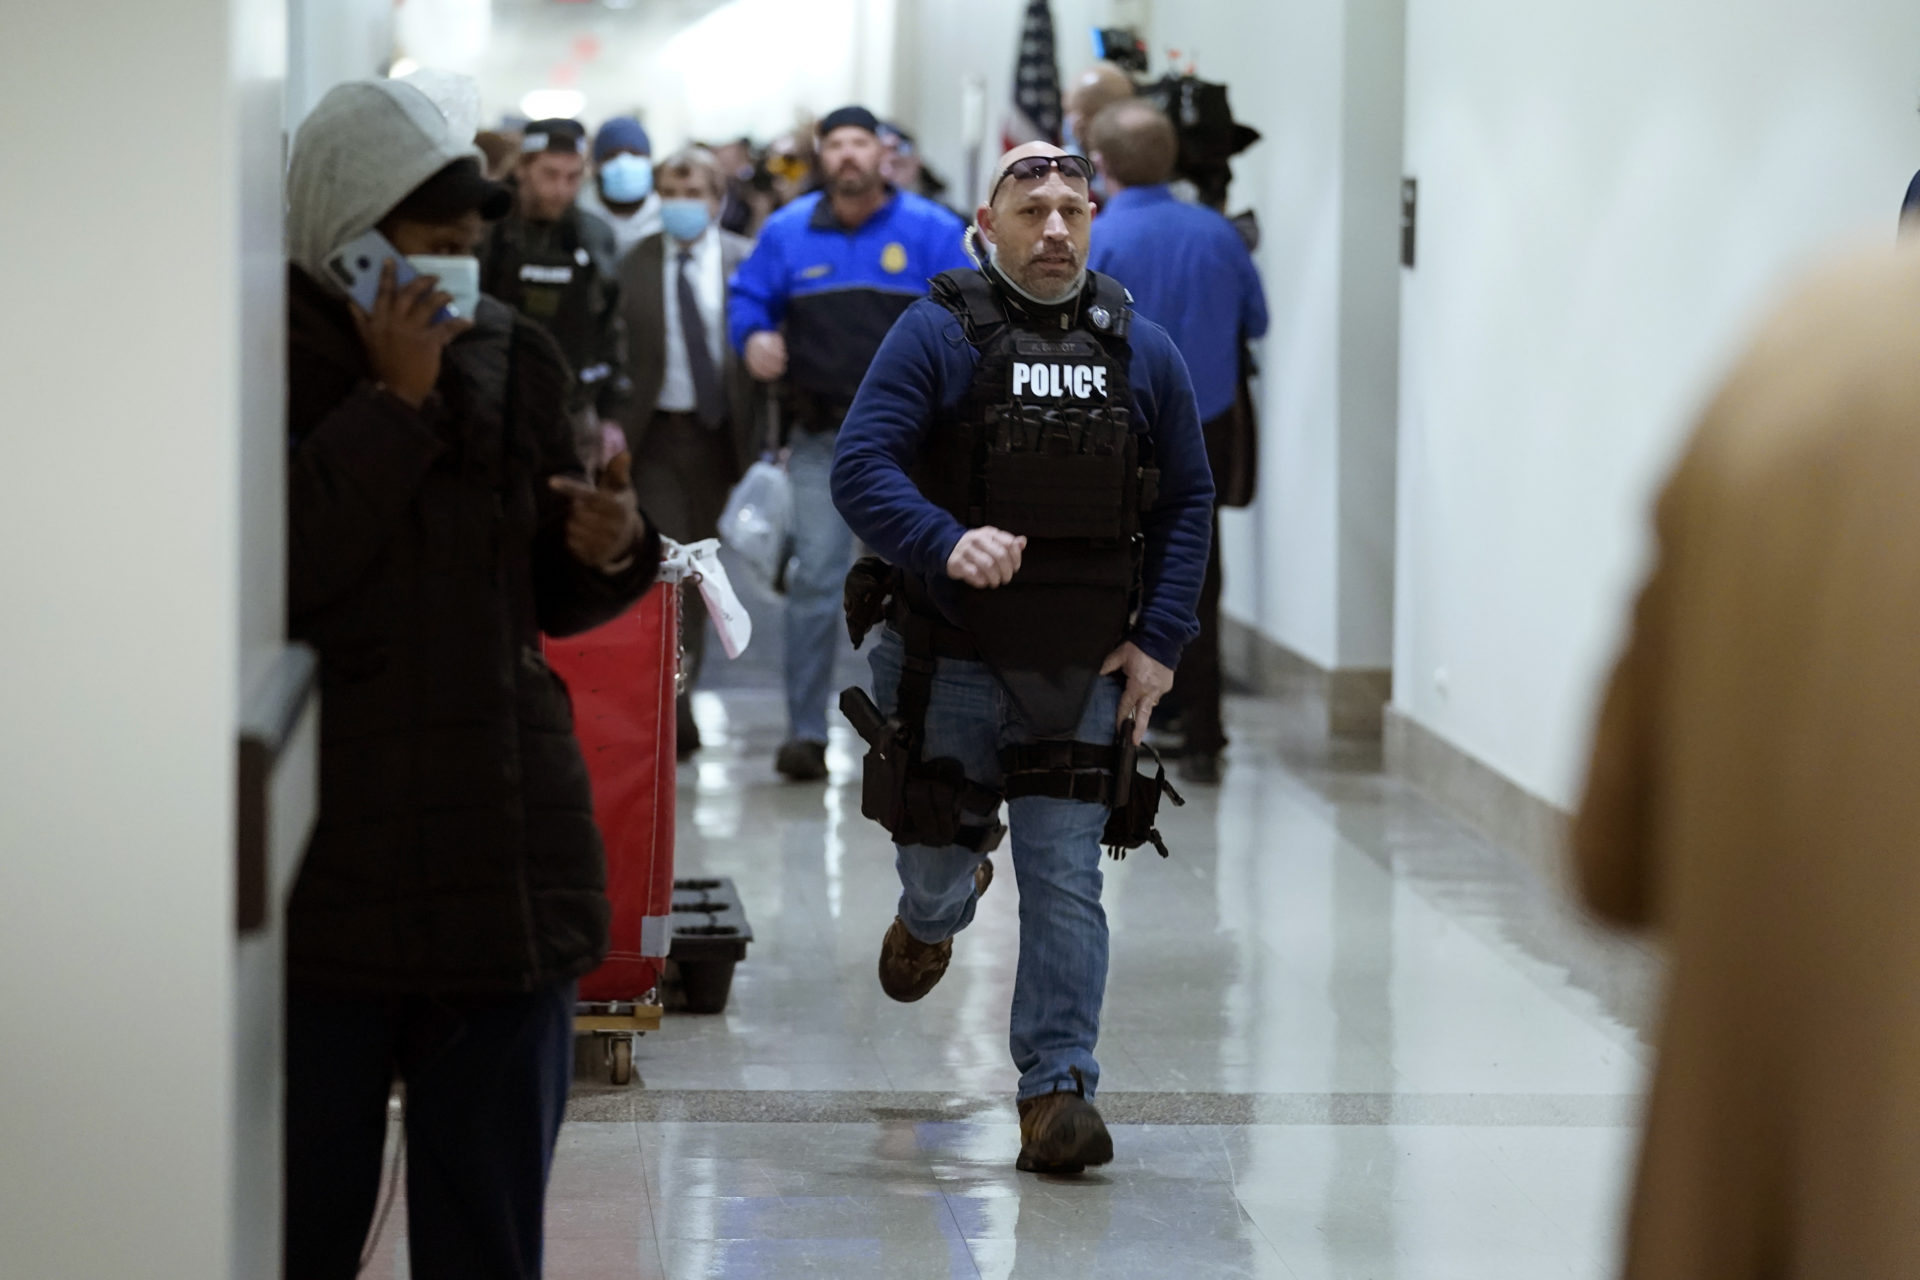 People run in the halls as protesters try to break into the House Chamber. (Andrew Harnik/AP)